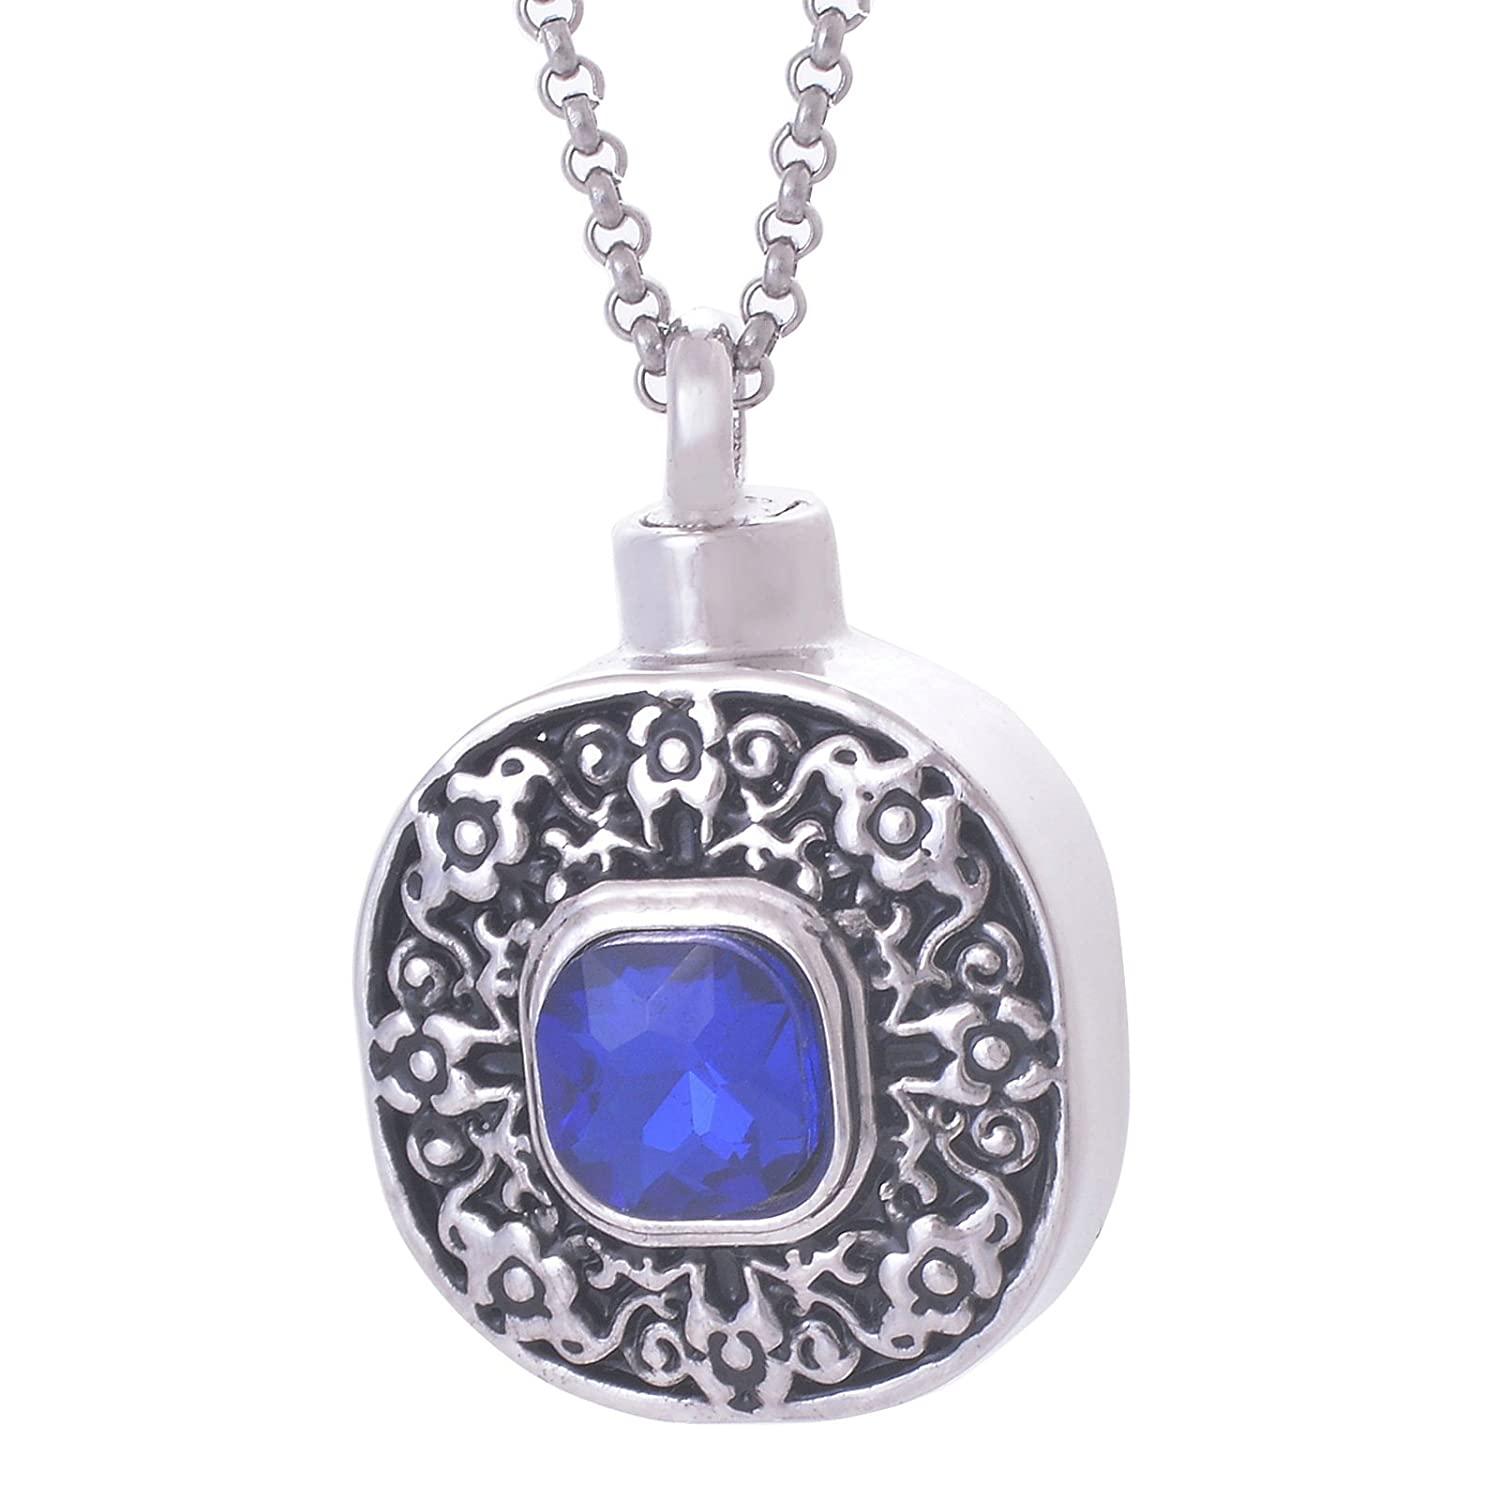 Gnzoe Round Tag Memorial Ash Urn Necklace Stainless Steel Cremation Jewelry Silver